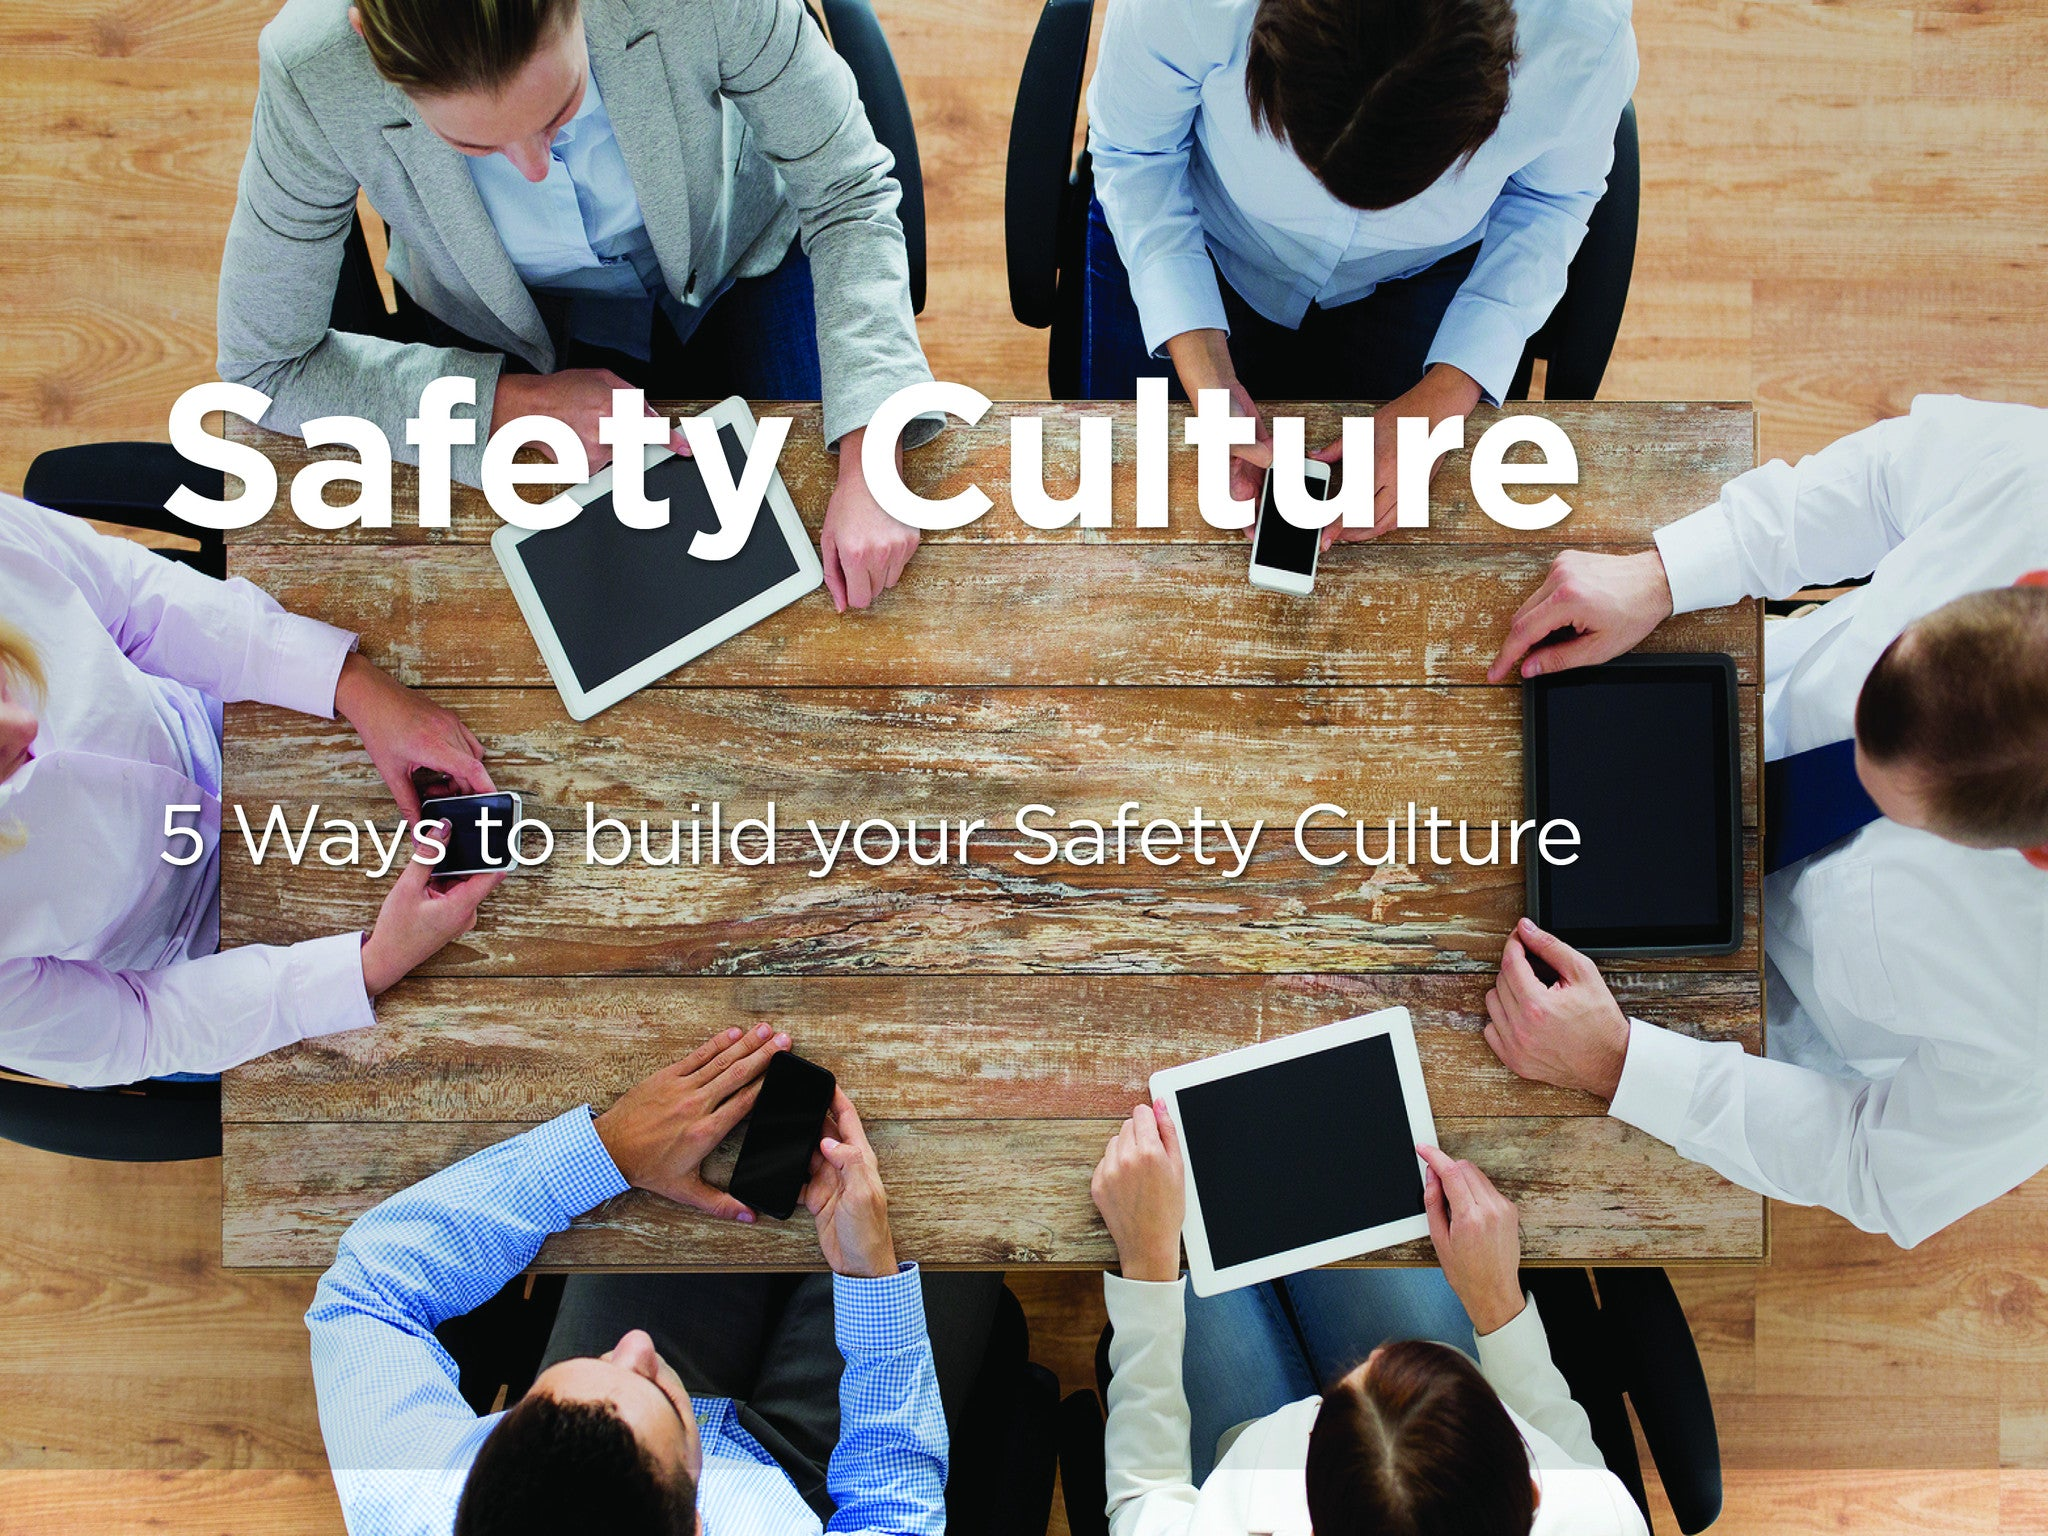 5 Ways to build your Safety Culture